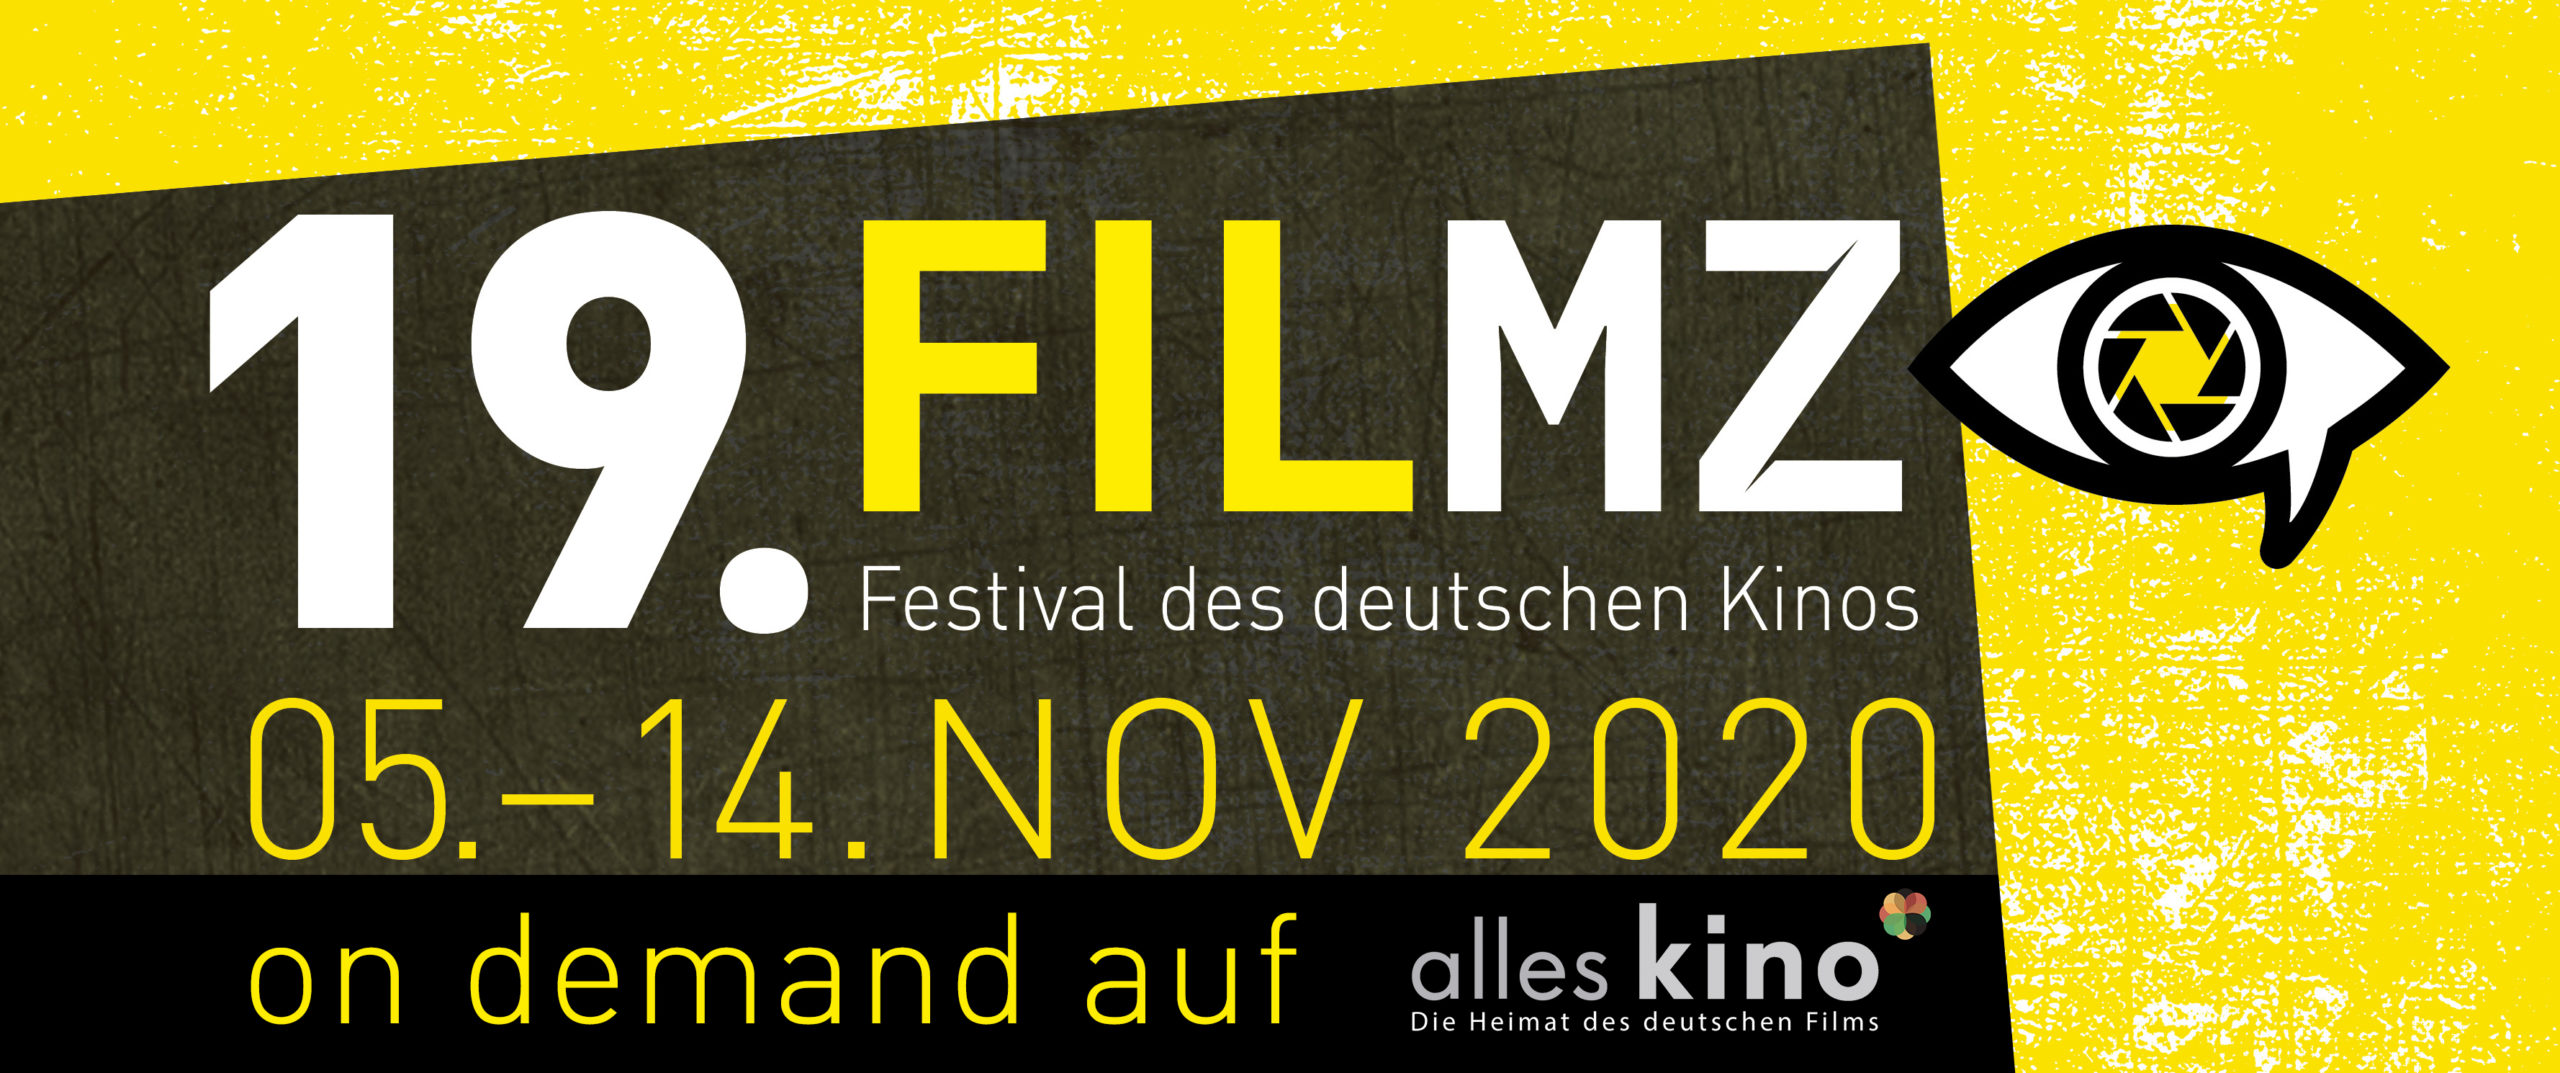 Filmz - Festival des deutschen Kinos // 05. Nov - 14. Nov 2020